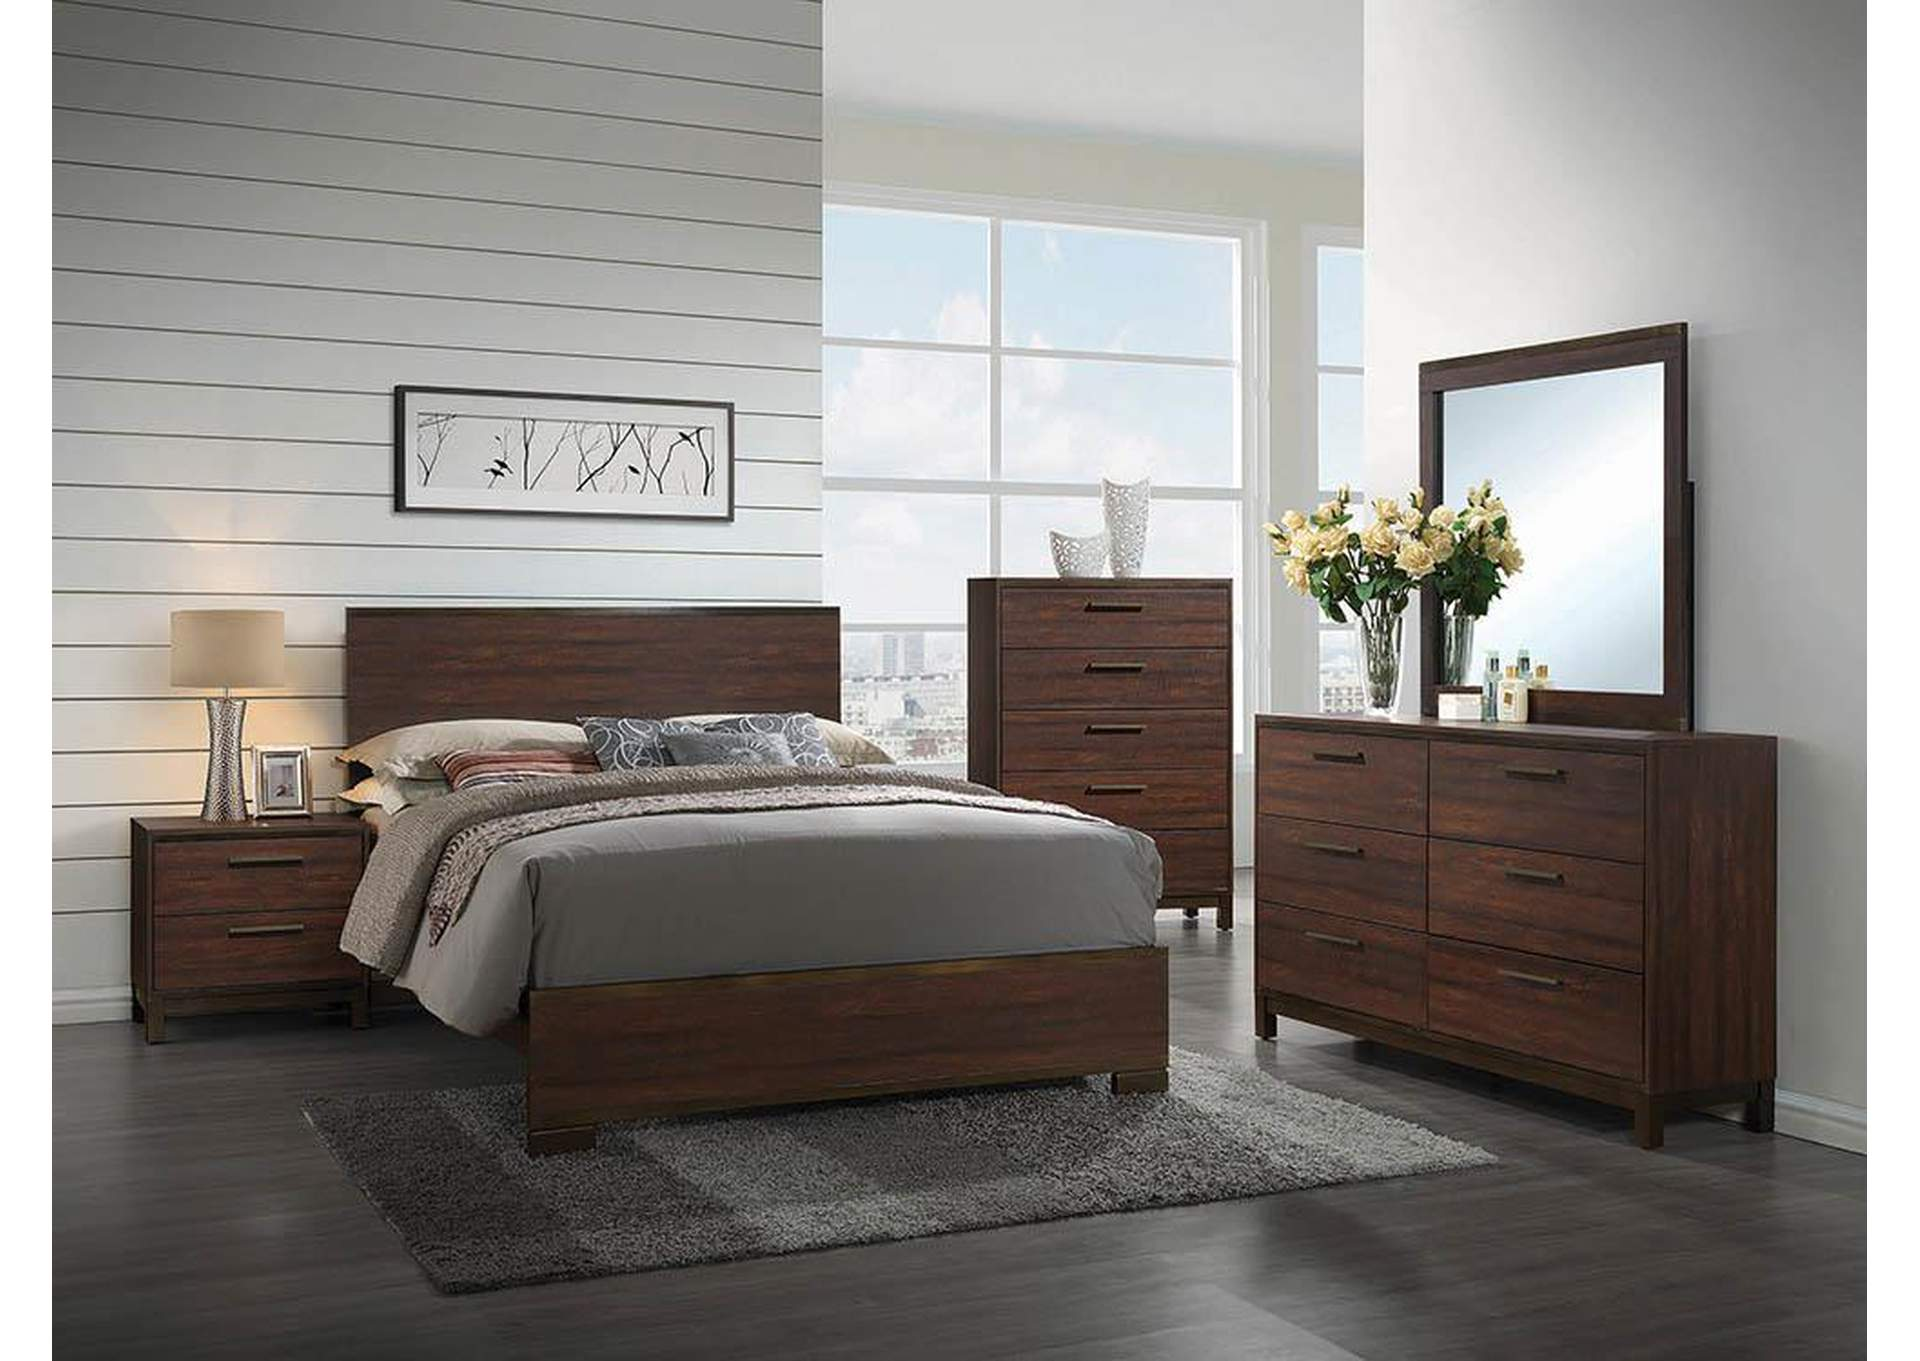 Harlem Furniture Rustic TobaccoDark Bronze Queen Panel Bed : 204351Q from harlemfurniturenyc.com size 1050 x 744 jpeg 153kB